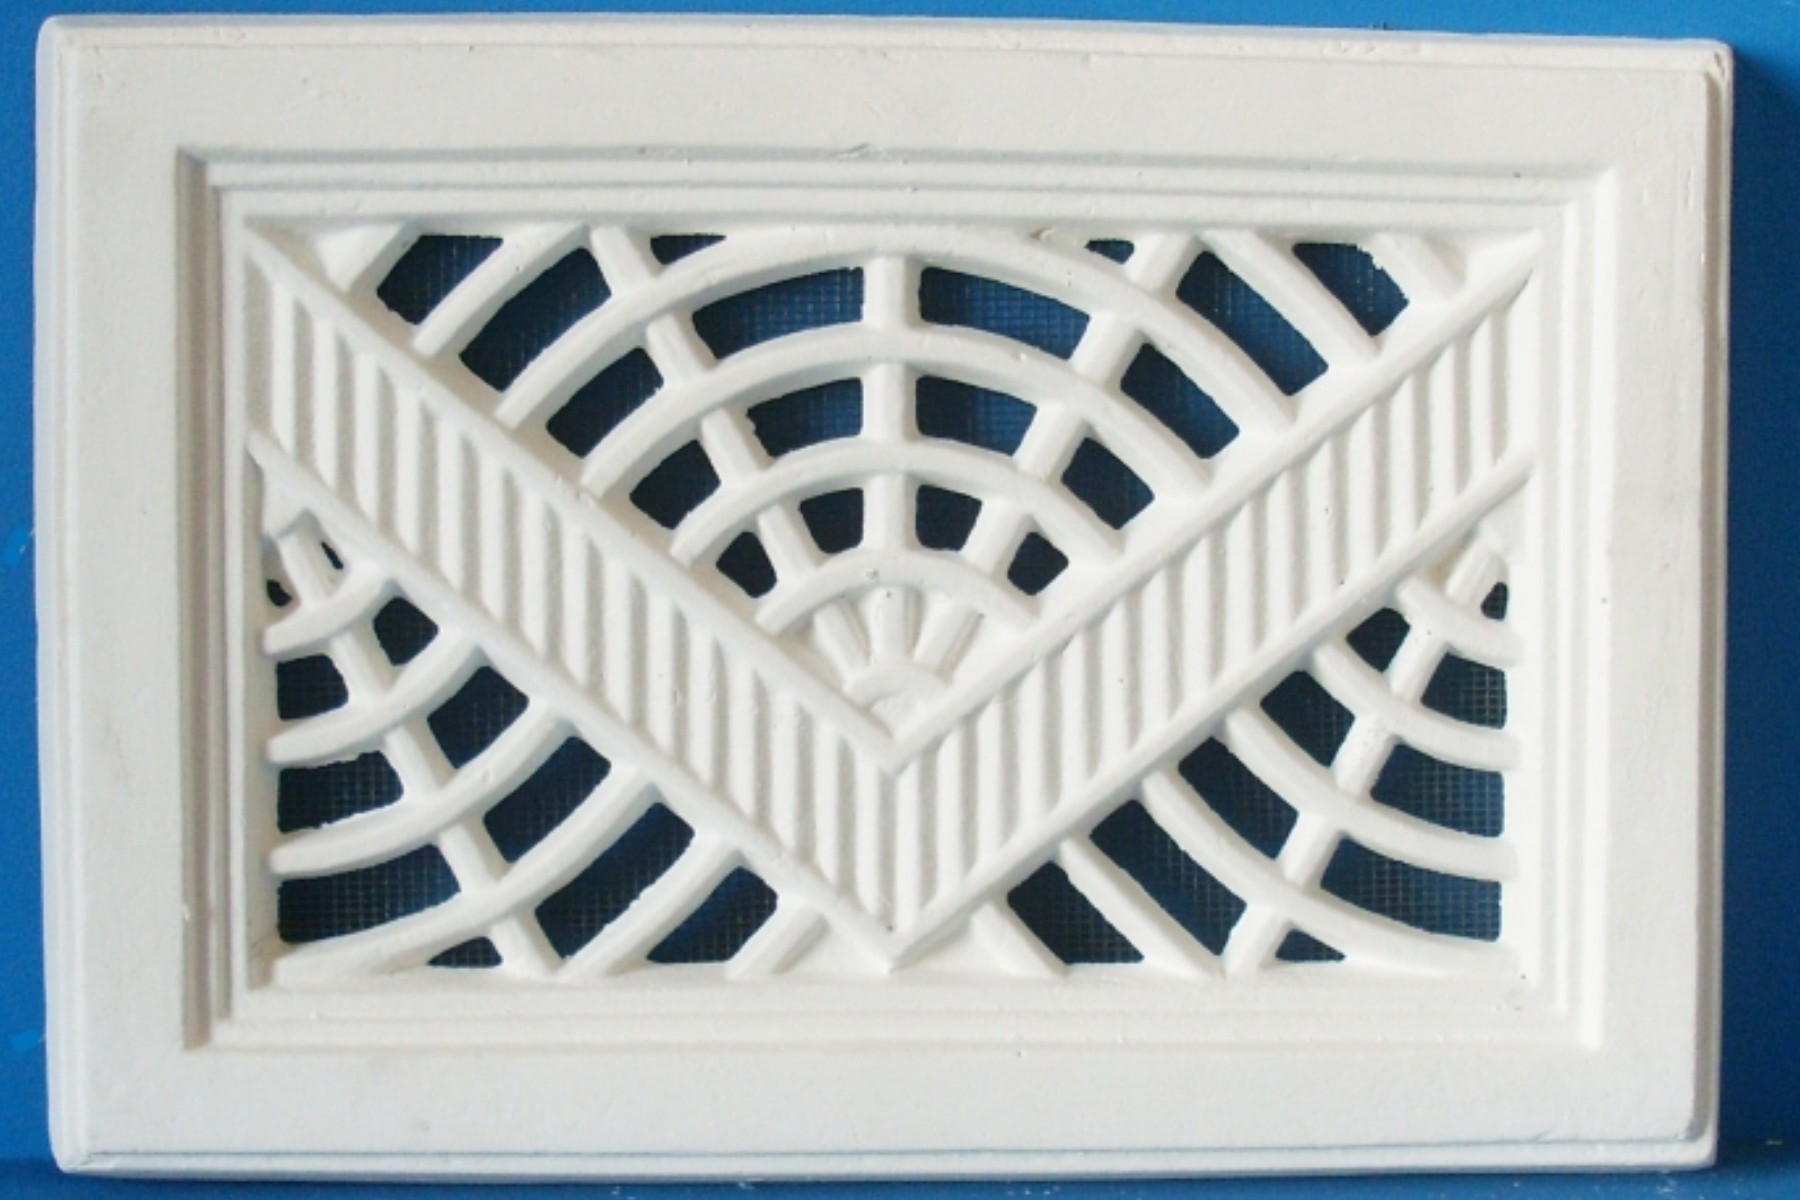 #1F73AC Plaster Vent 7 Recommended 7067 Wall Louvers Vents pics with 1800x1200 px on helpvideos.info - Air Conditioners, Air Coolers and more